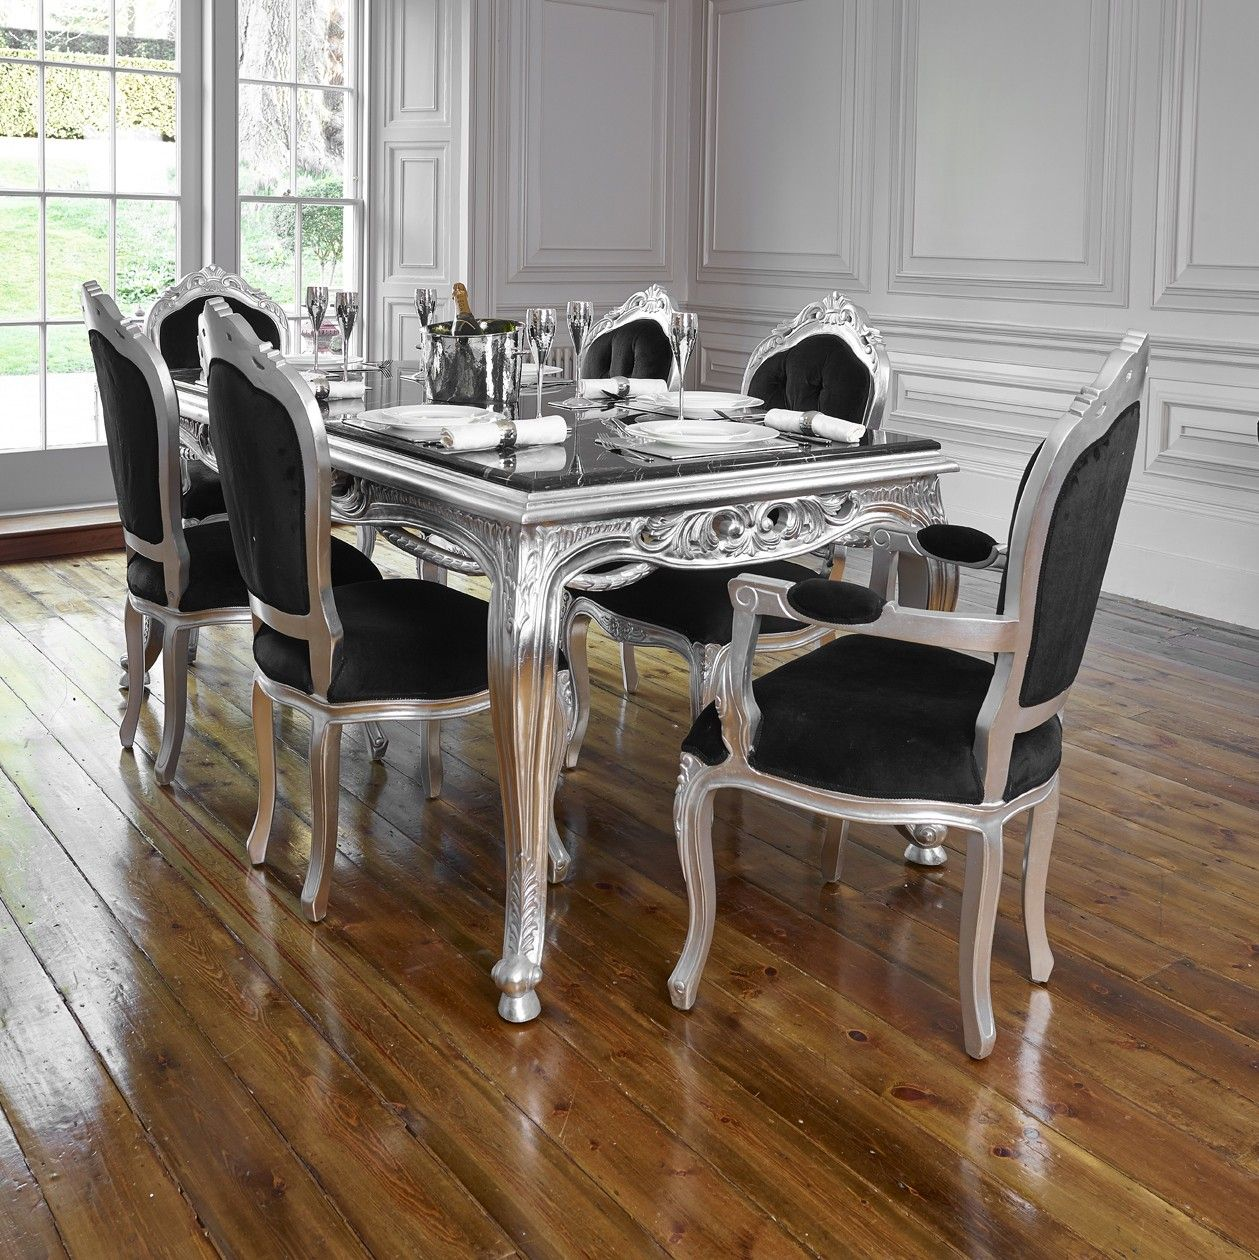 Rococo French Silver Leaf Dining Table Set With Chairs  Chalk Glamorous Dining Room Tables With Leaves Inspiration